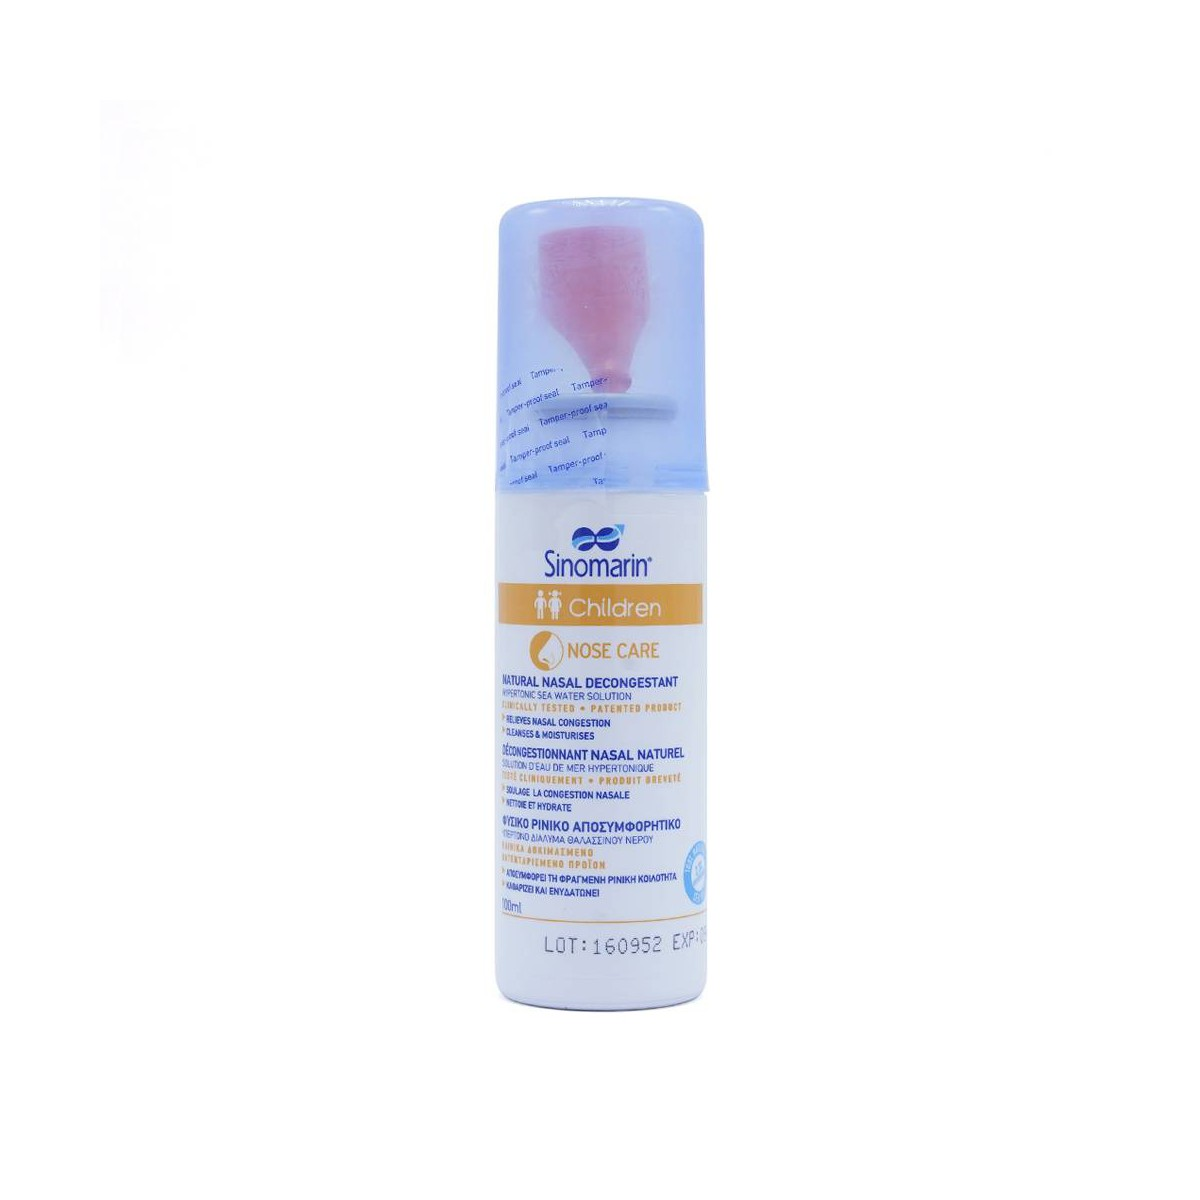 Sinomarin Children 100Ml